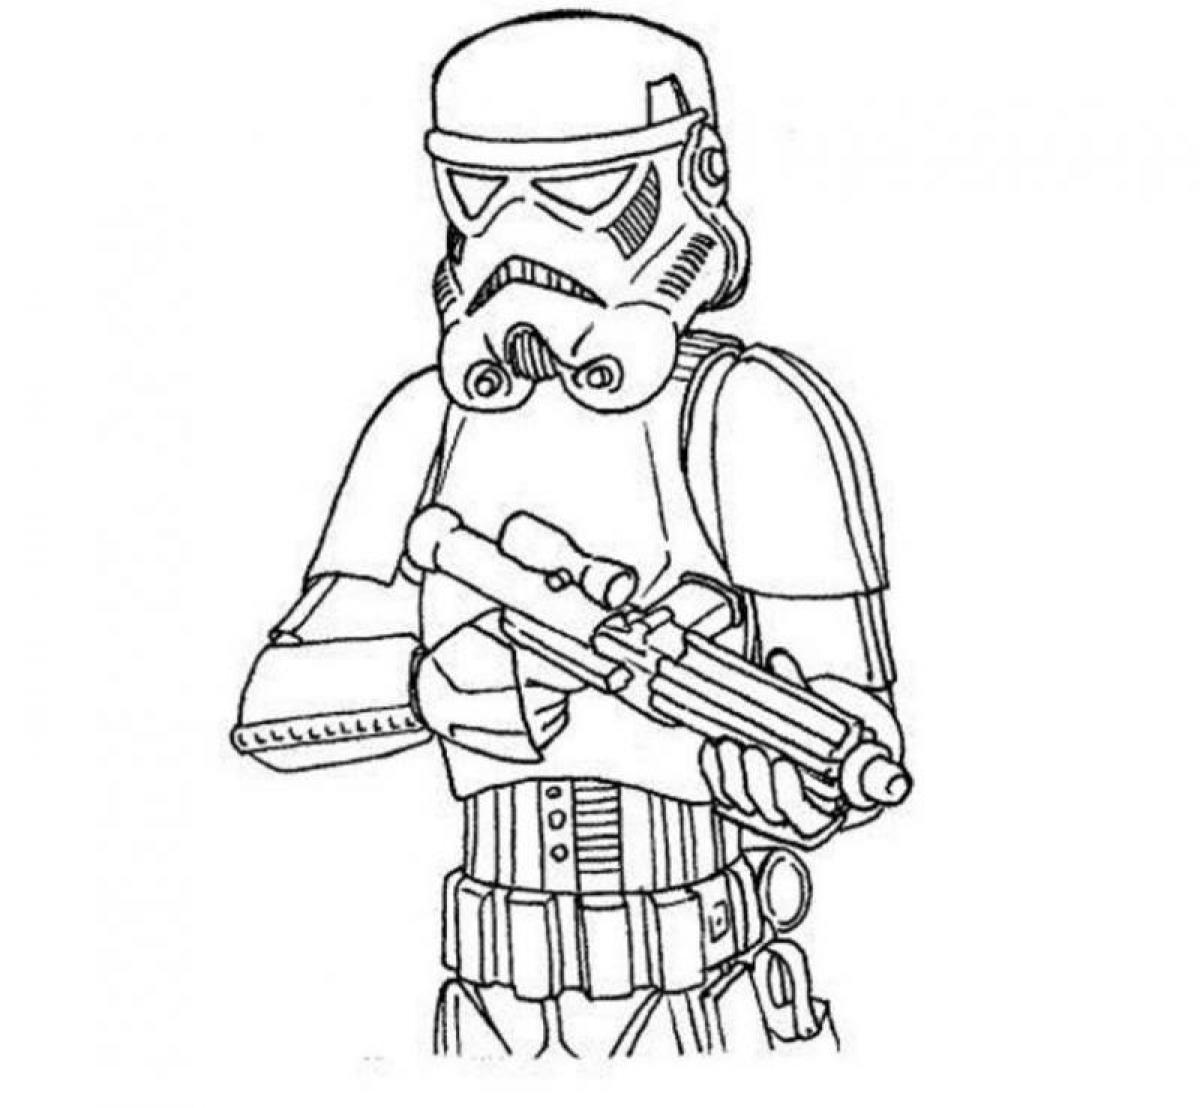 9 Best Images of Baby Stormtrooper Star Wars Printables